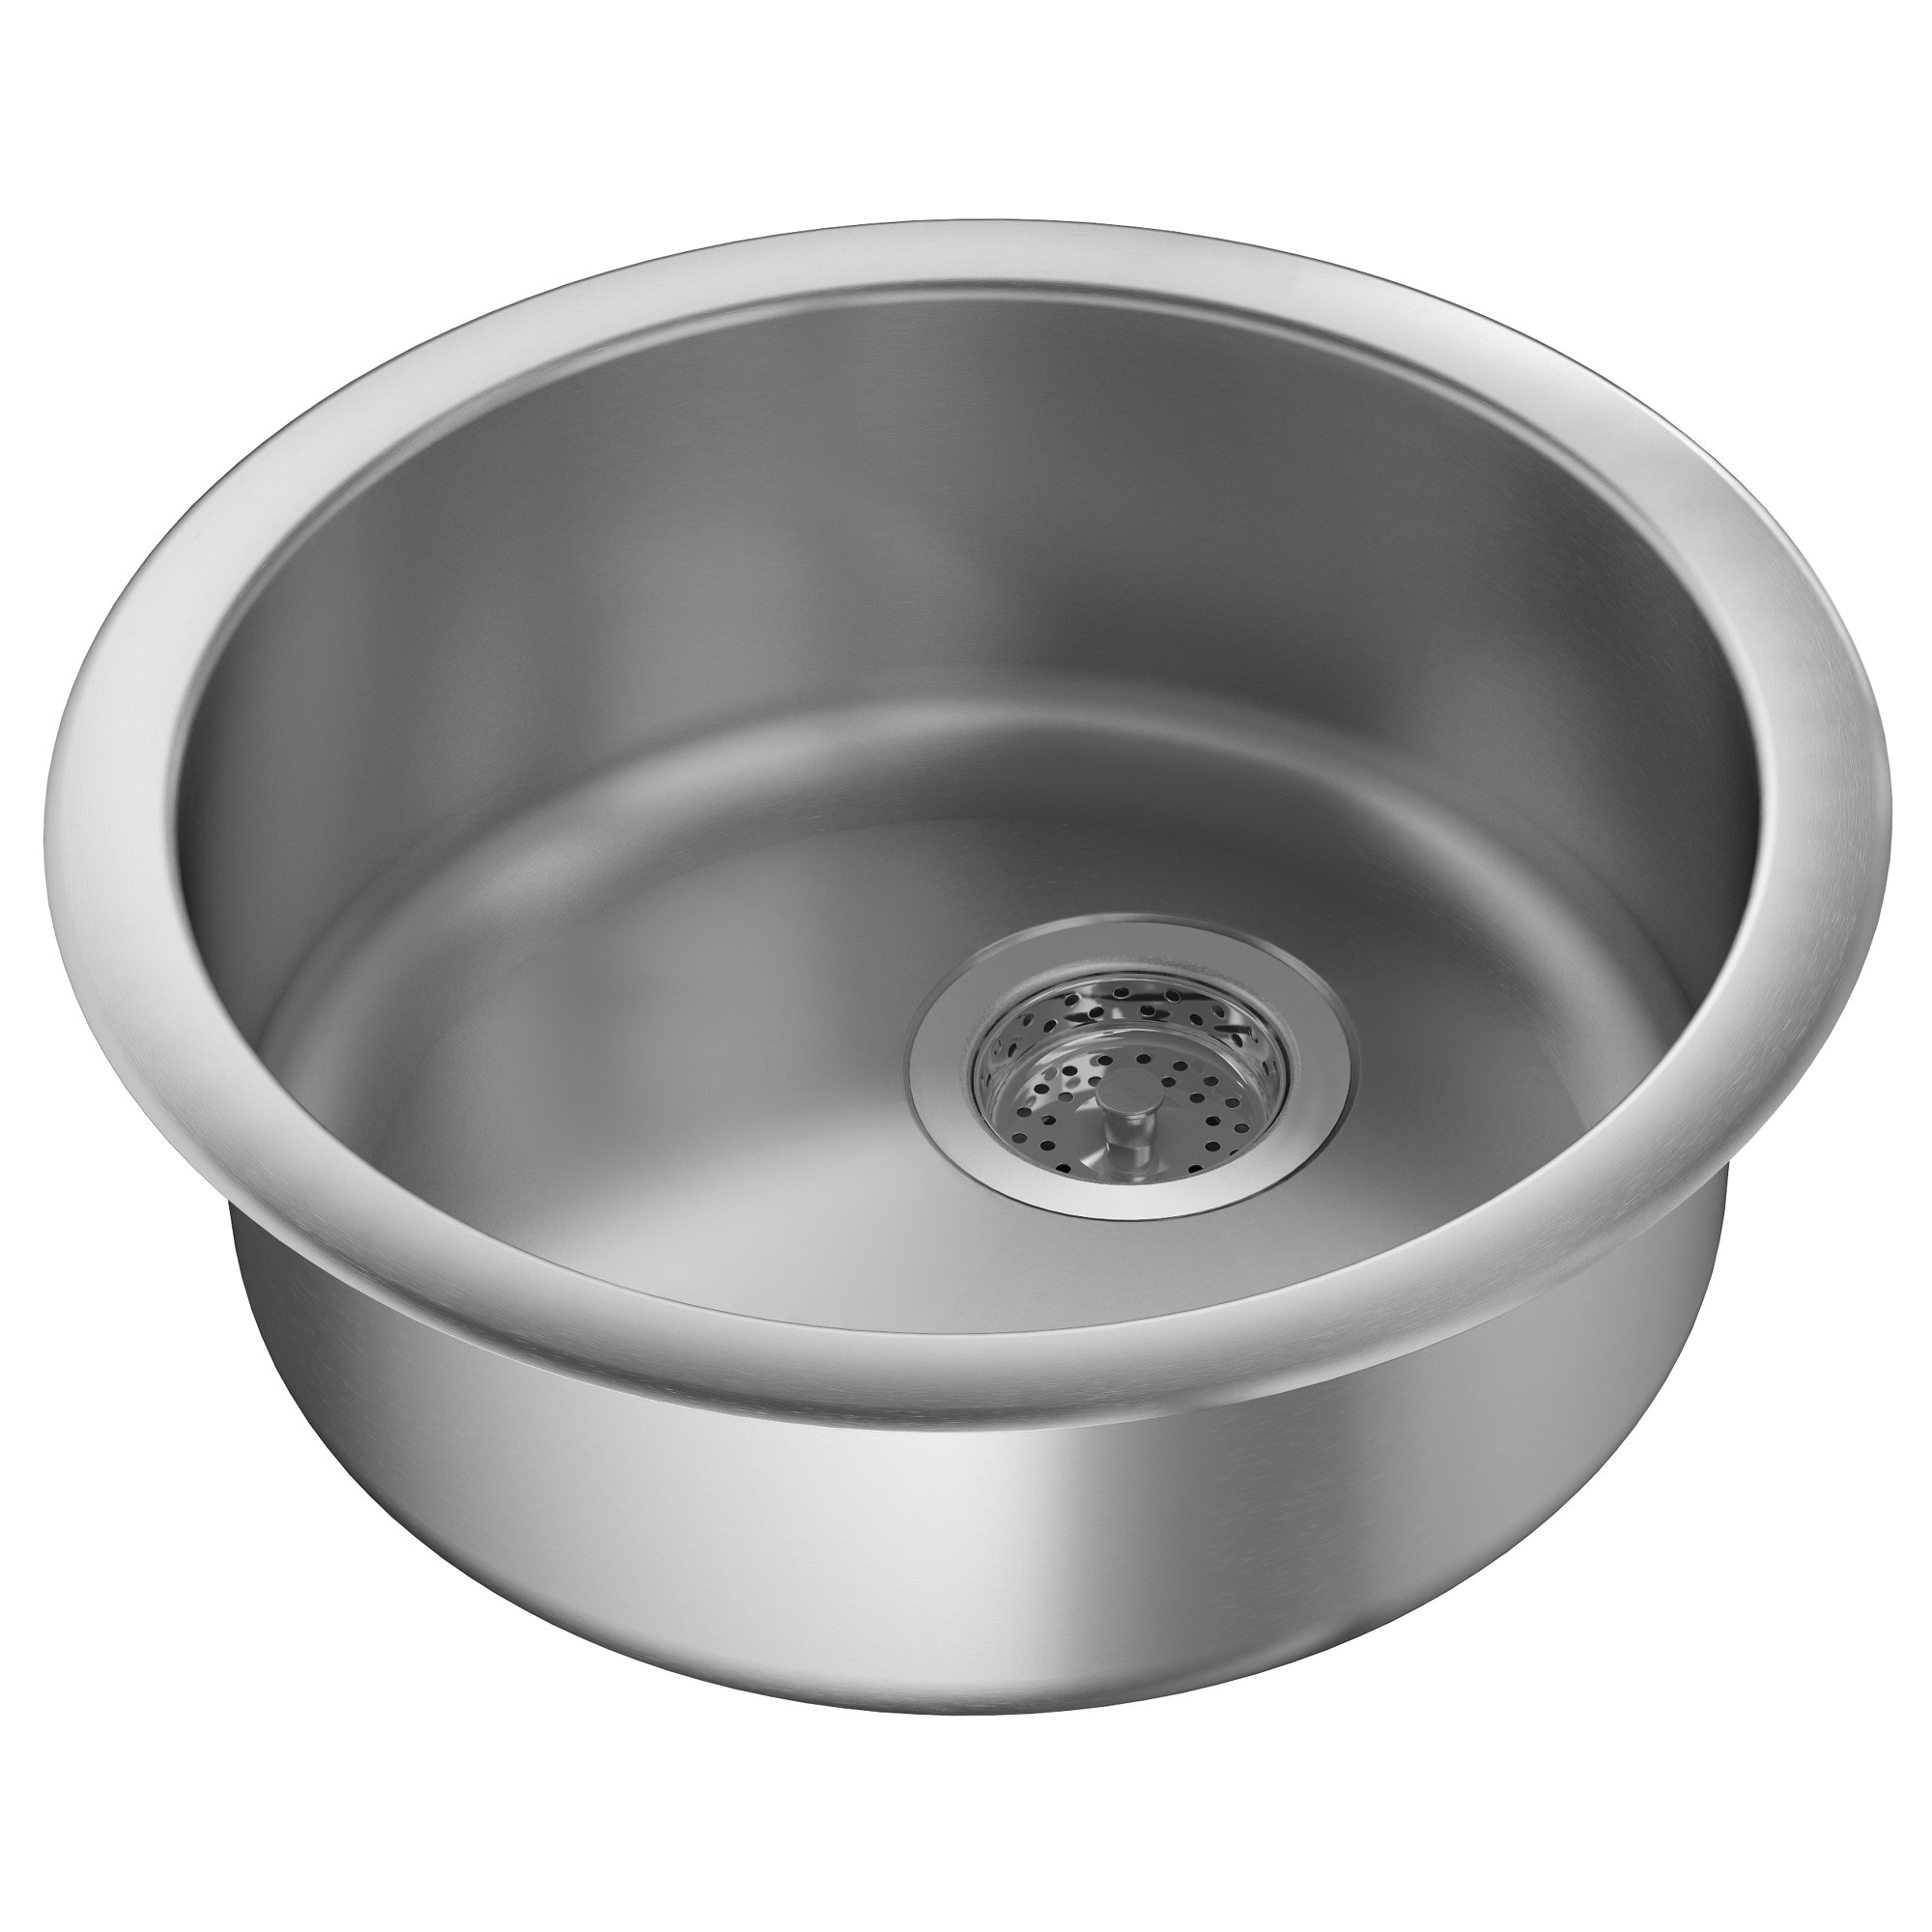 boholmen sink stainless steel height 5 78 diameter 17 3. Interior Design Ideas. Home Design Ideas